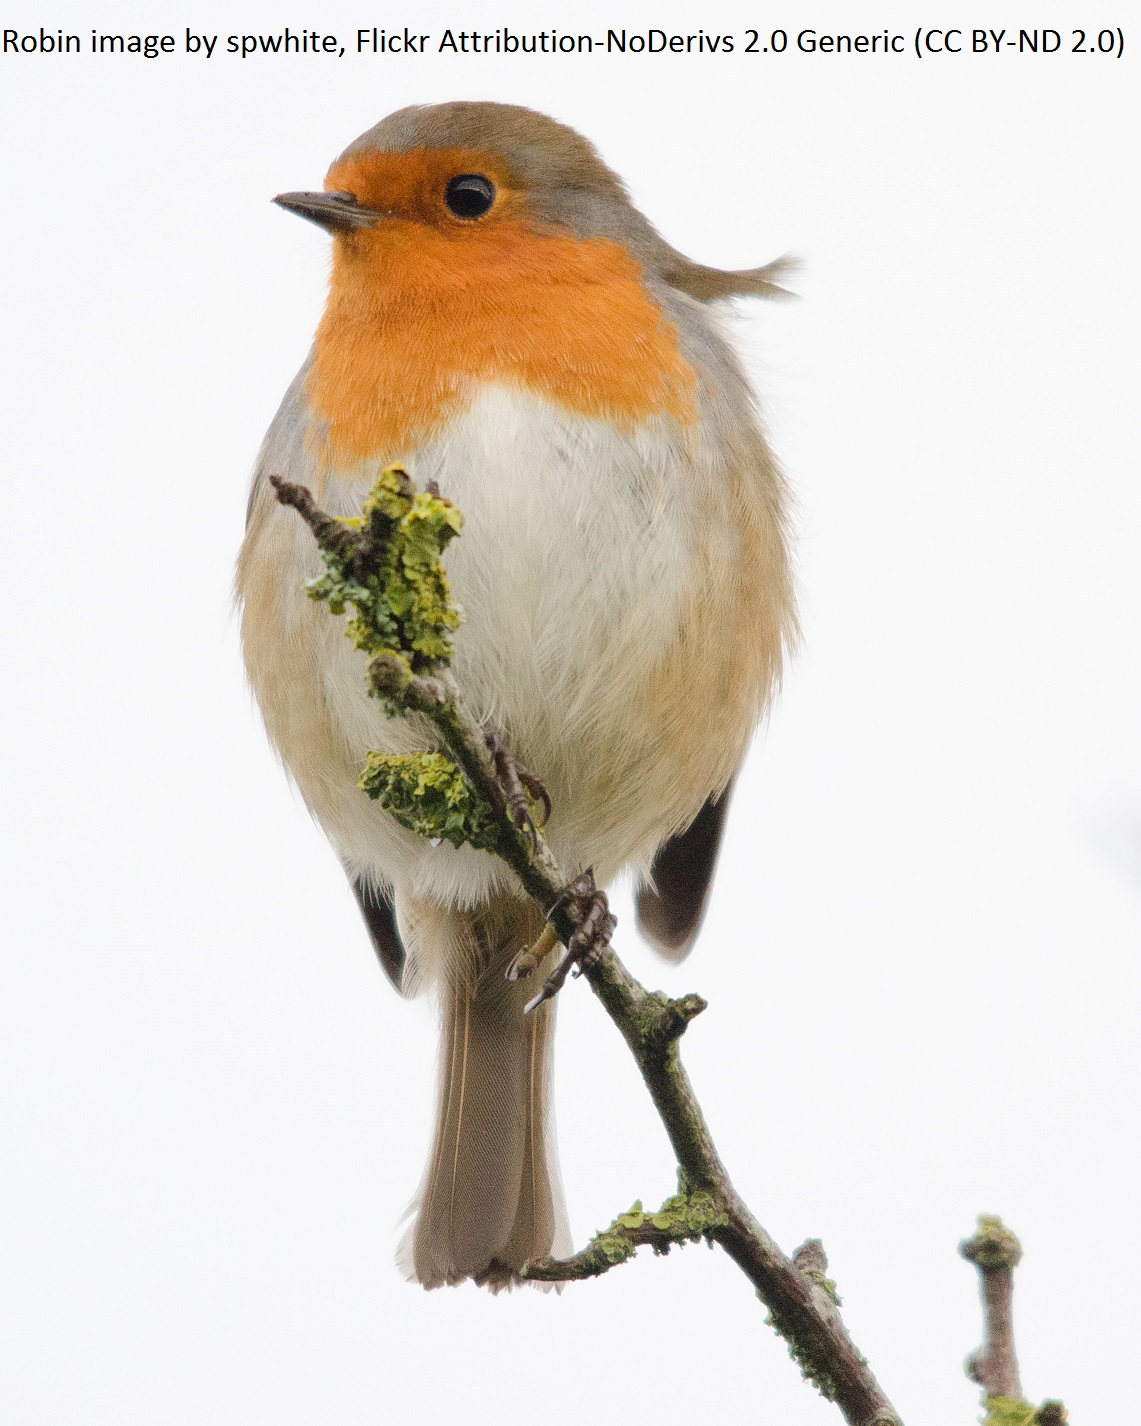 Robin_CC BY-ND 2.0_spwhite1_attribution on image.jpg